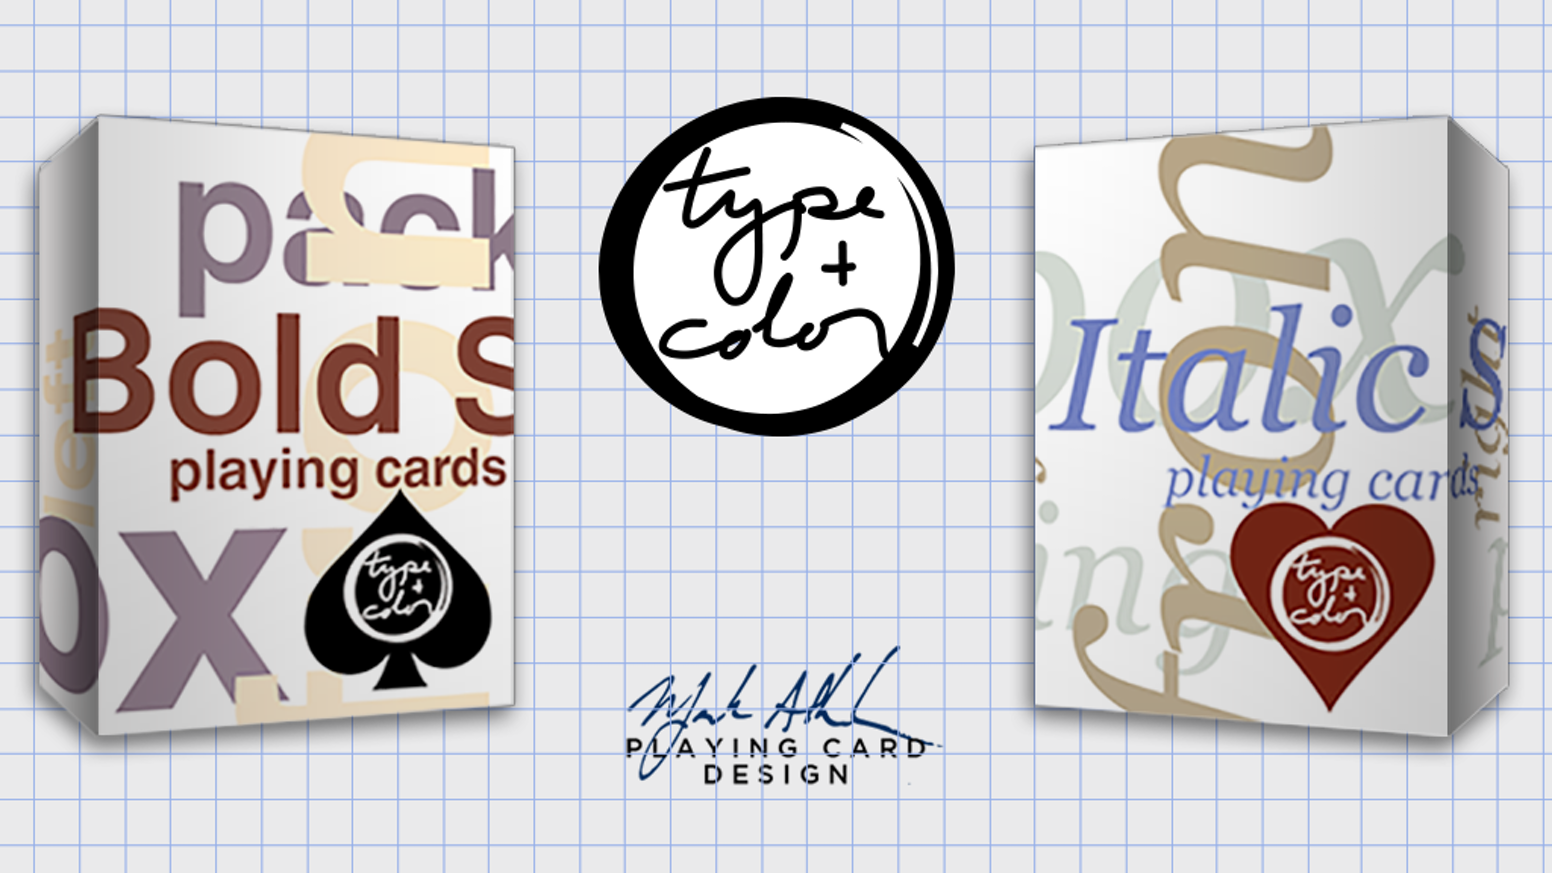 Type+Color is a set of playing card decks utilizing different color schemes with different type styles.